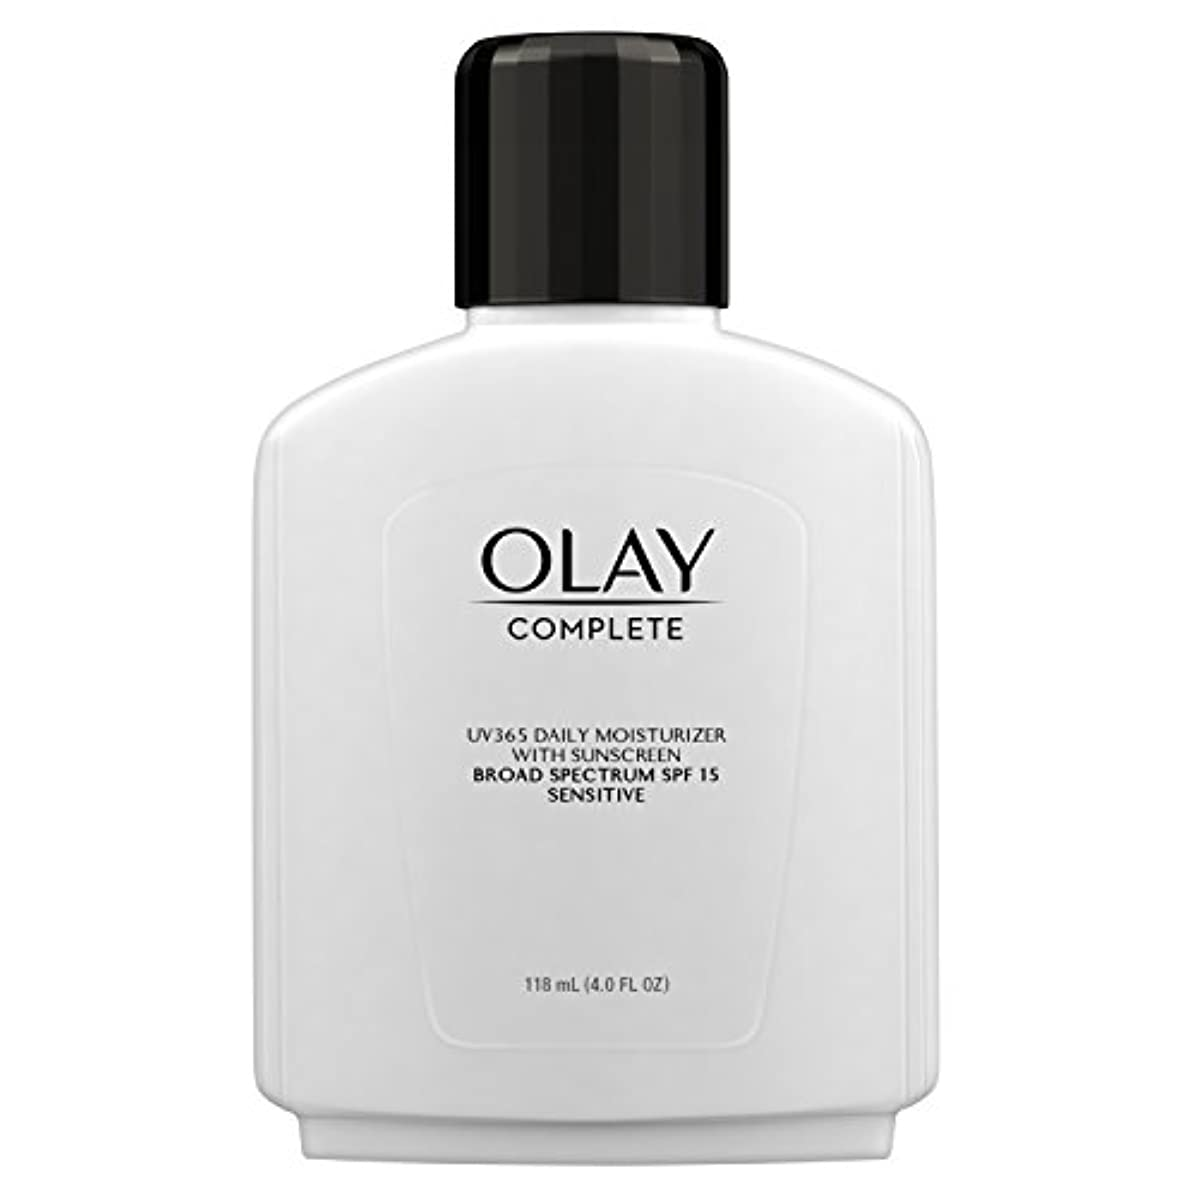 Olay Complete All Day Moisture Lotion UV Defense SPF 15, Sensitive Skin, 4 fl oz (118 ml) (1 pack) (並行輸入品)